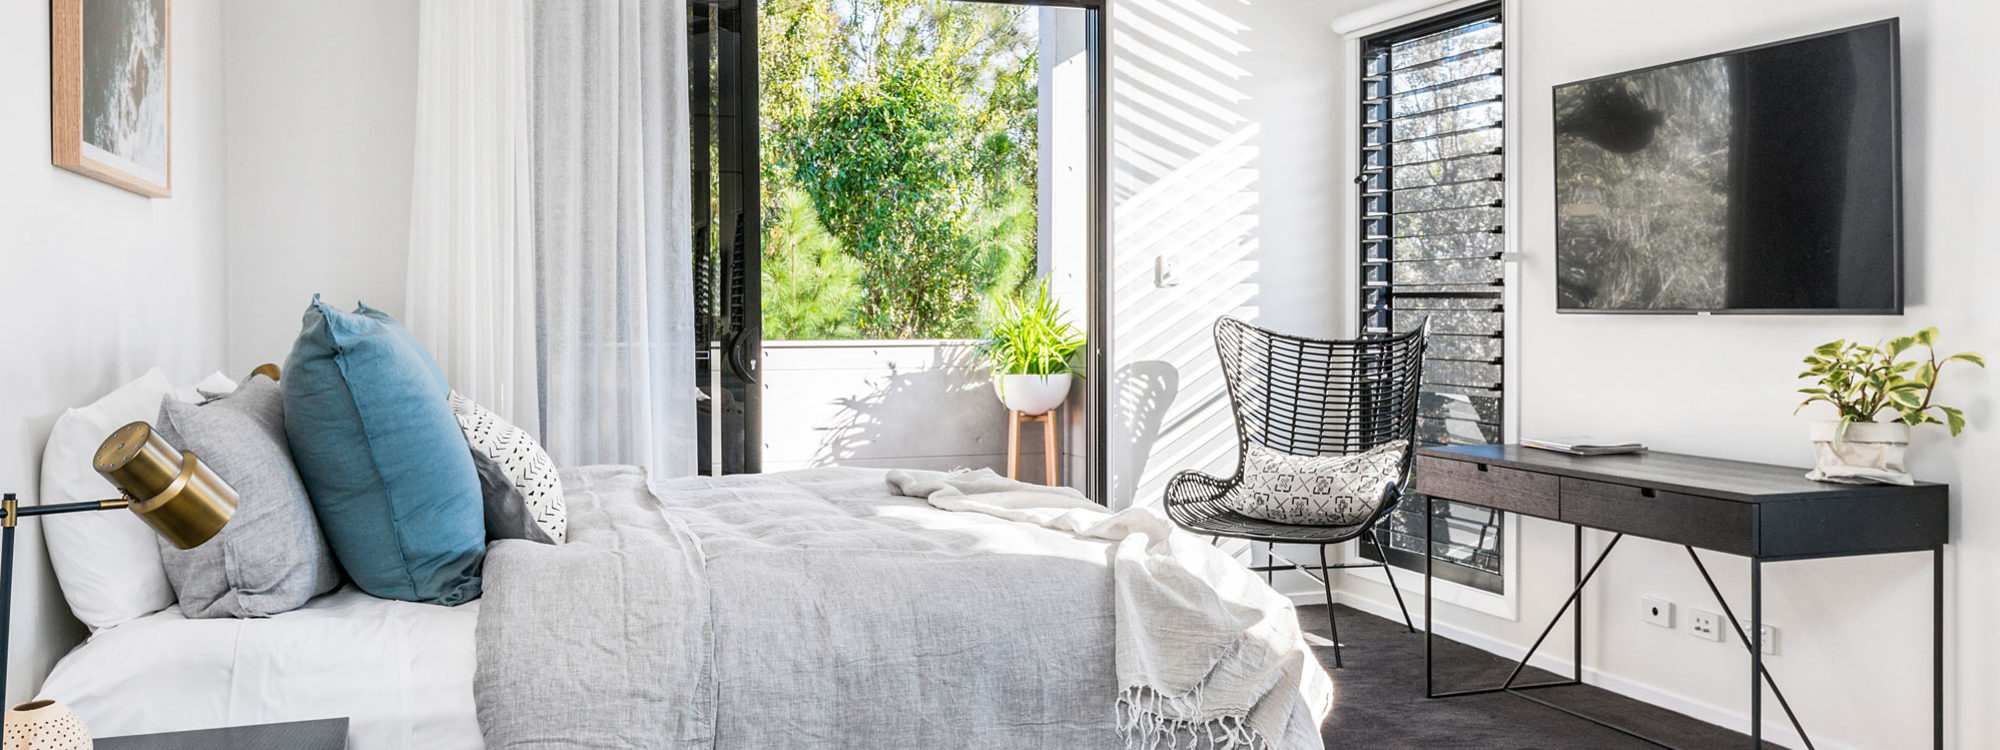 Catalinas - Byron Bay - Bedroom 1 with Ensuite a